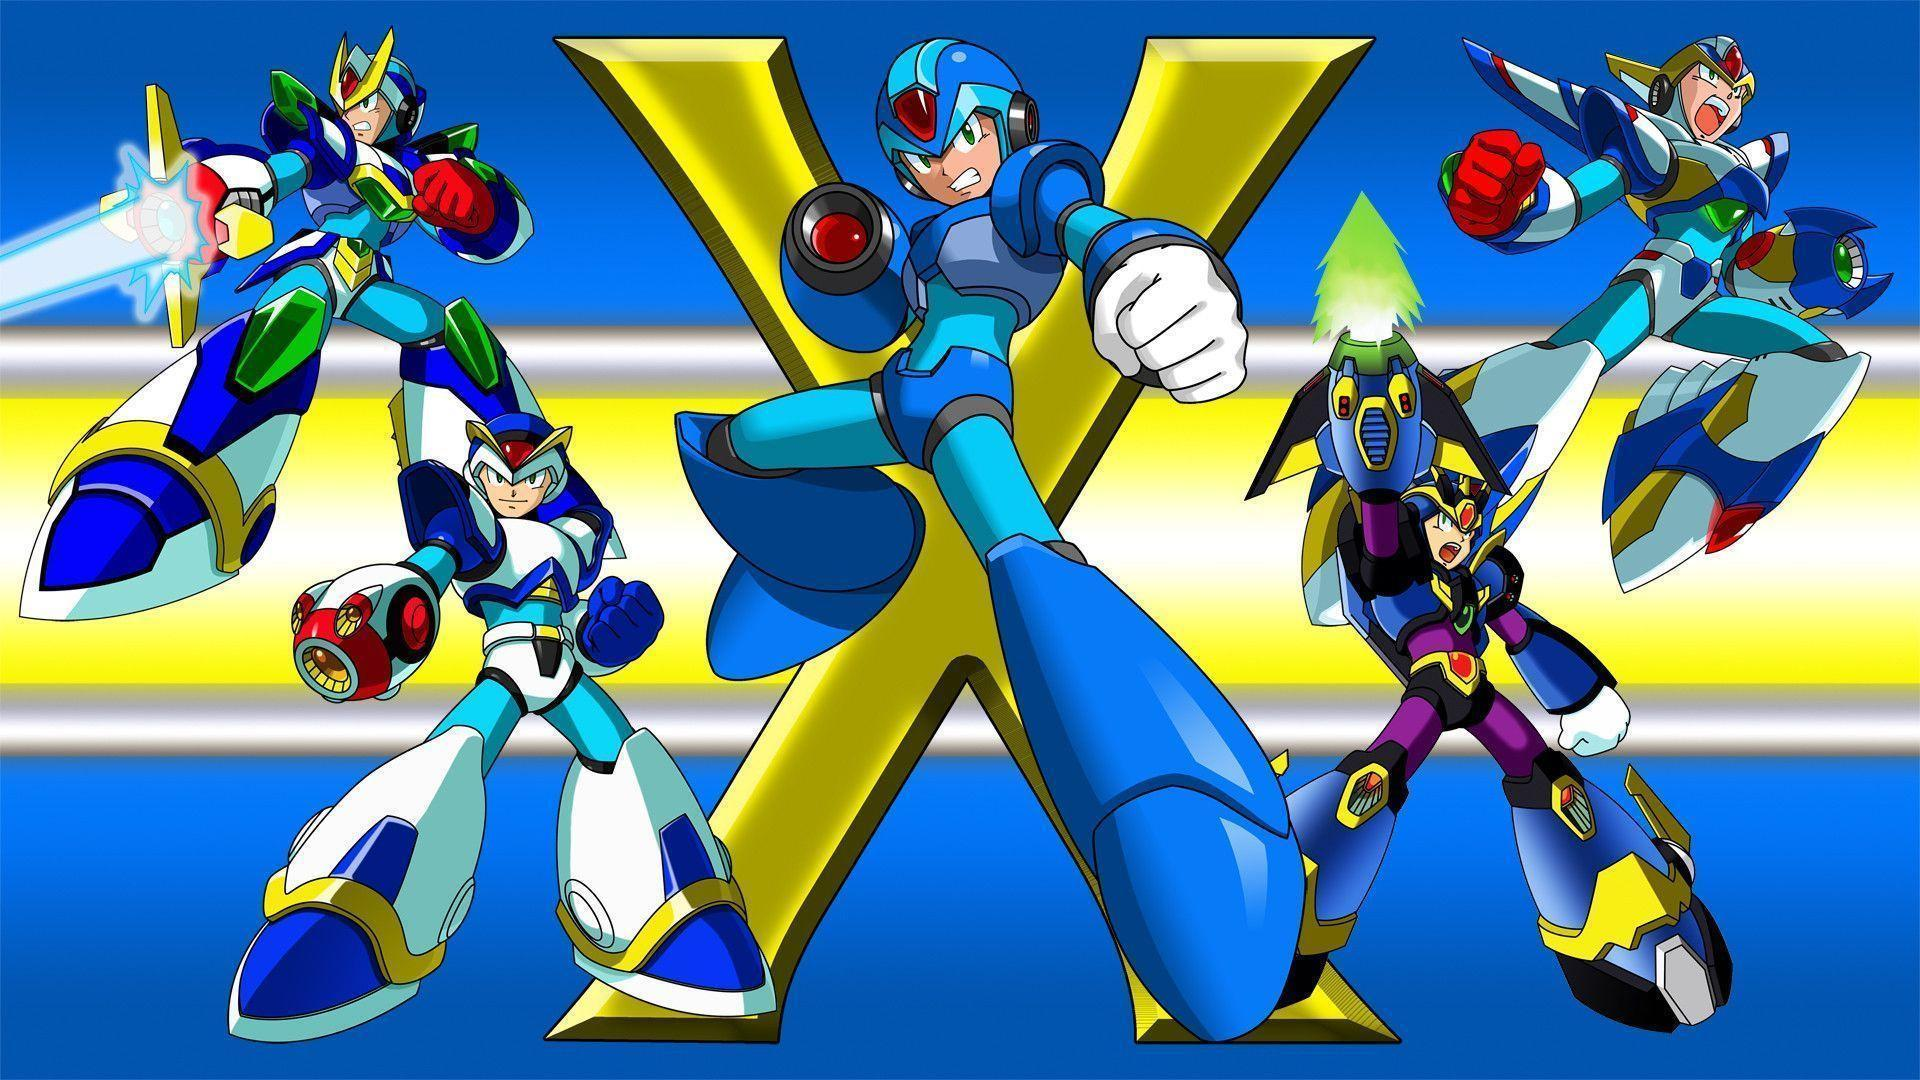 megaman wallpaper iphone